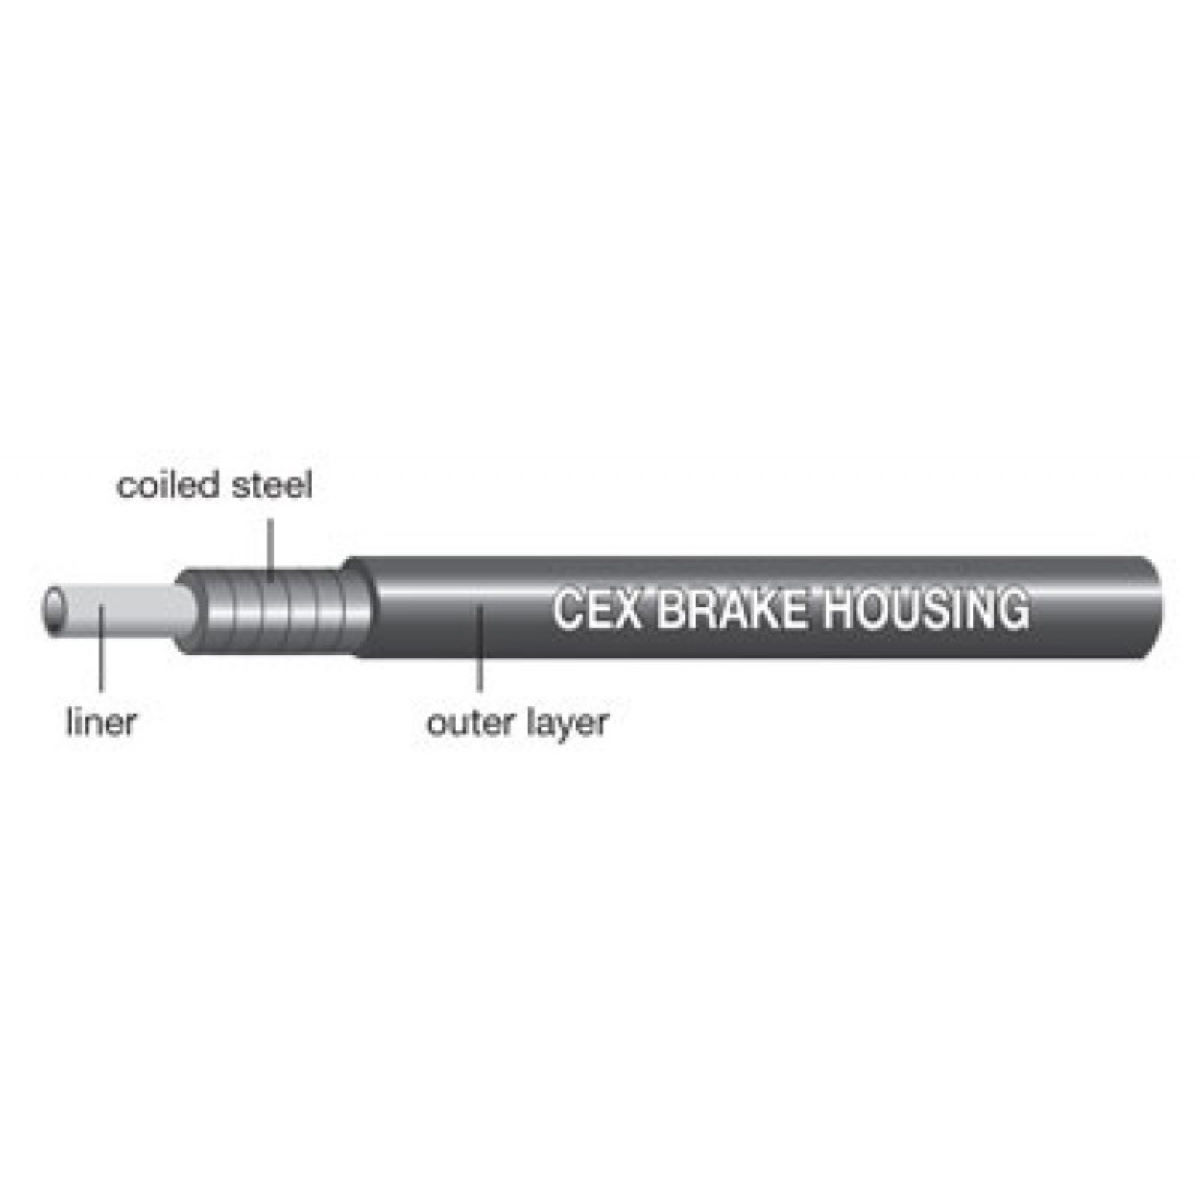 Jagwire CEX Outer Brake Housing - Cables de freno